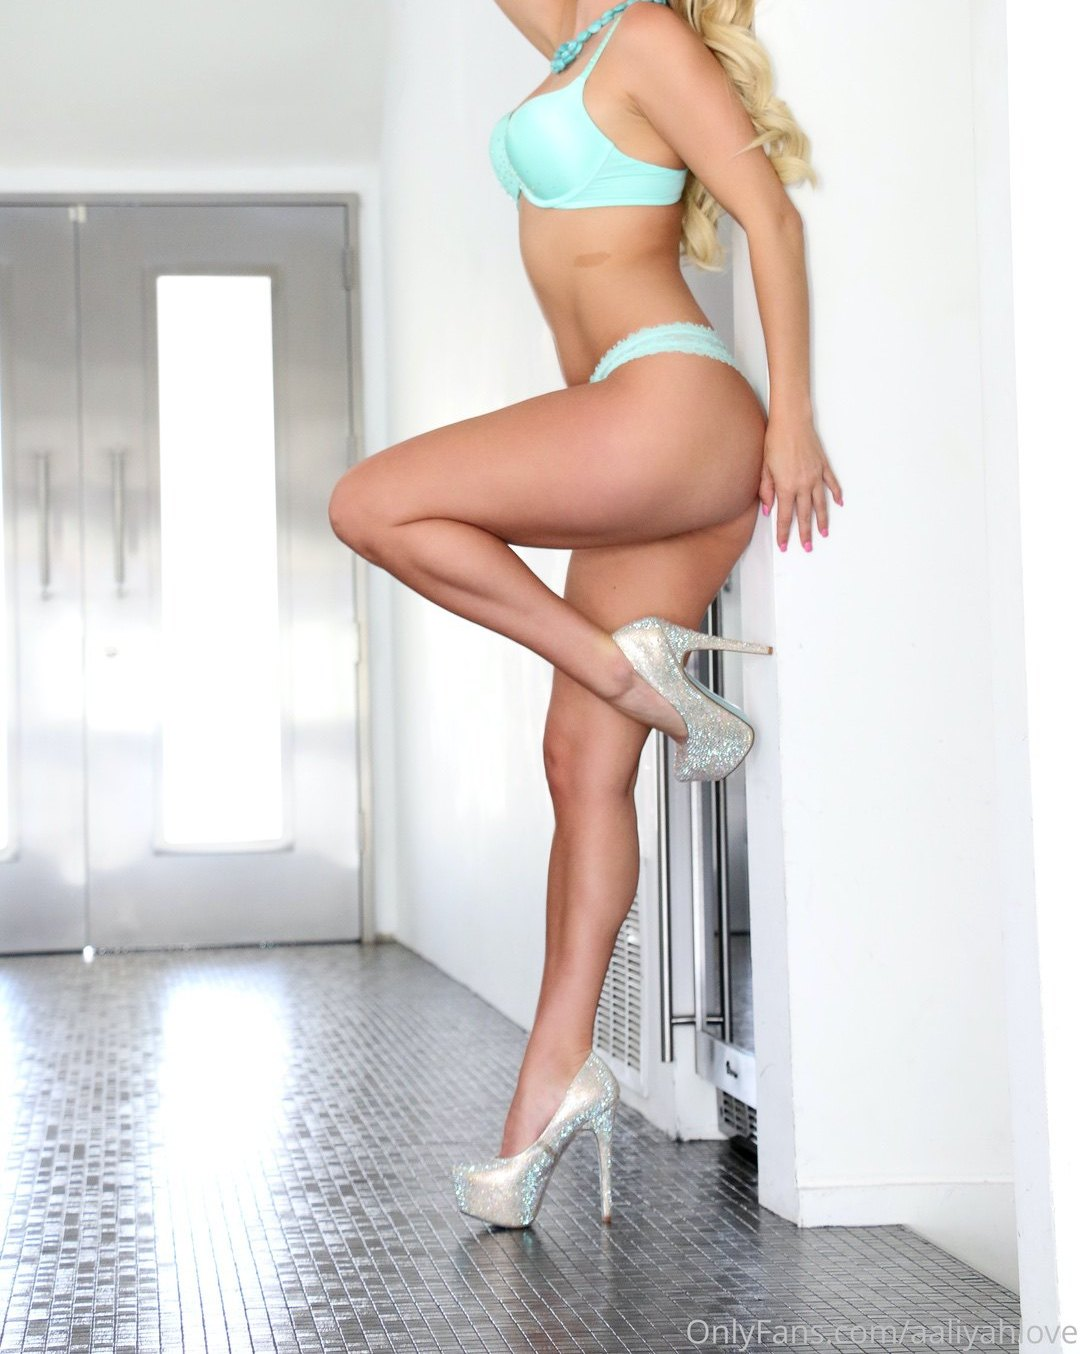 Aaliyah Love Aaliyahlove Onlyfans Sexy Leaks 0029